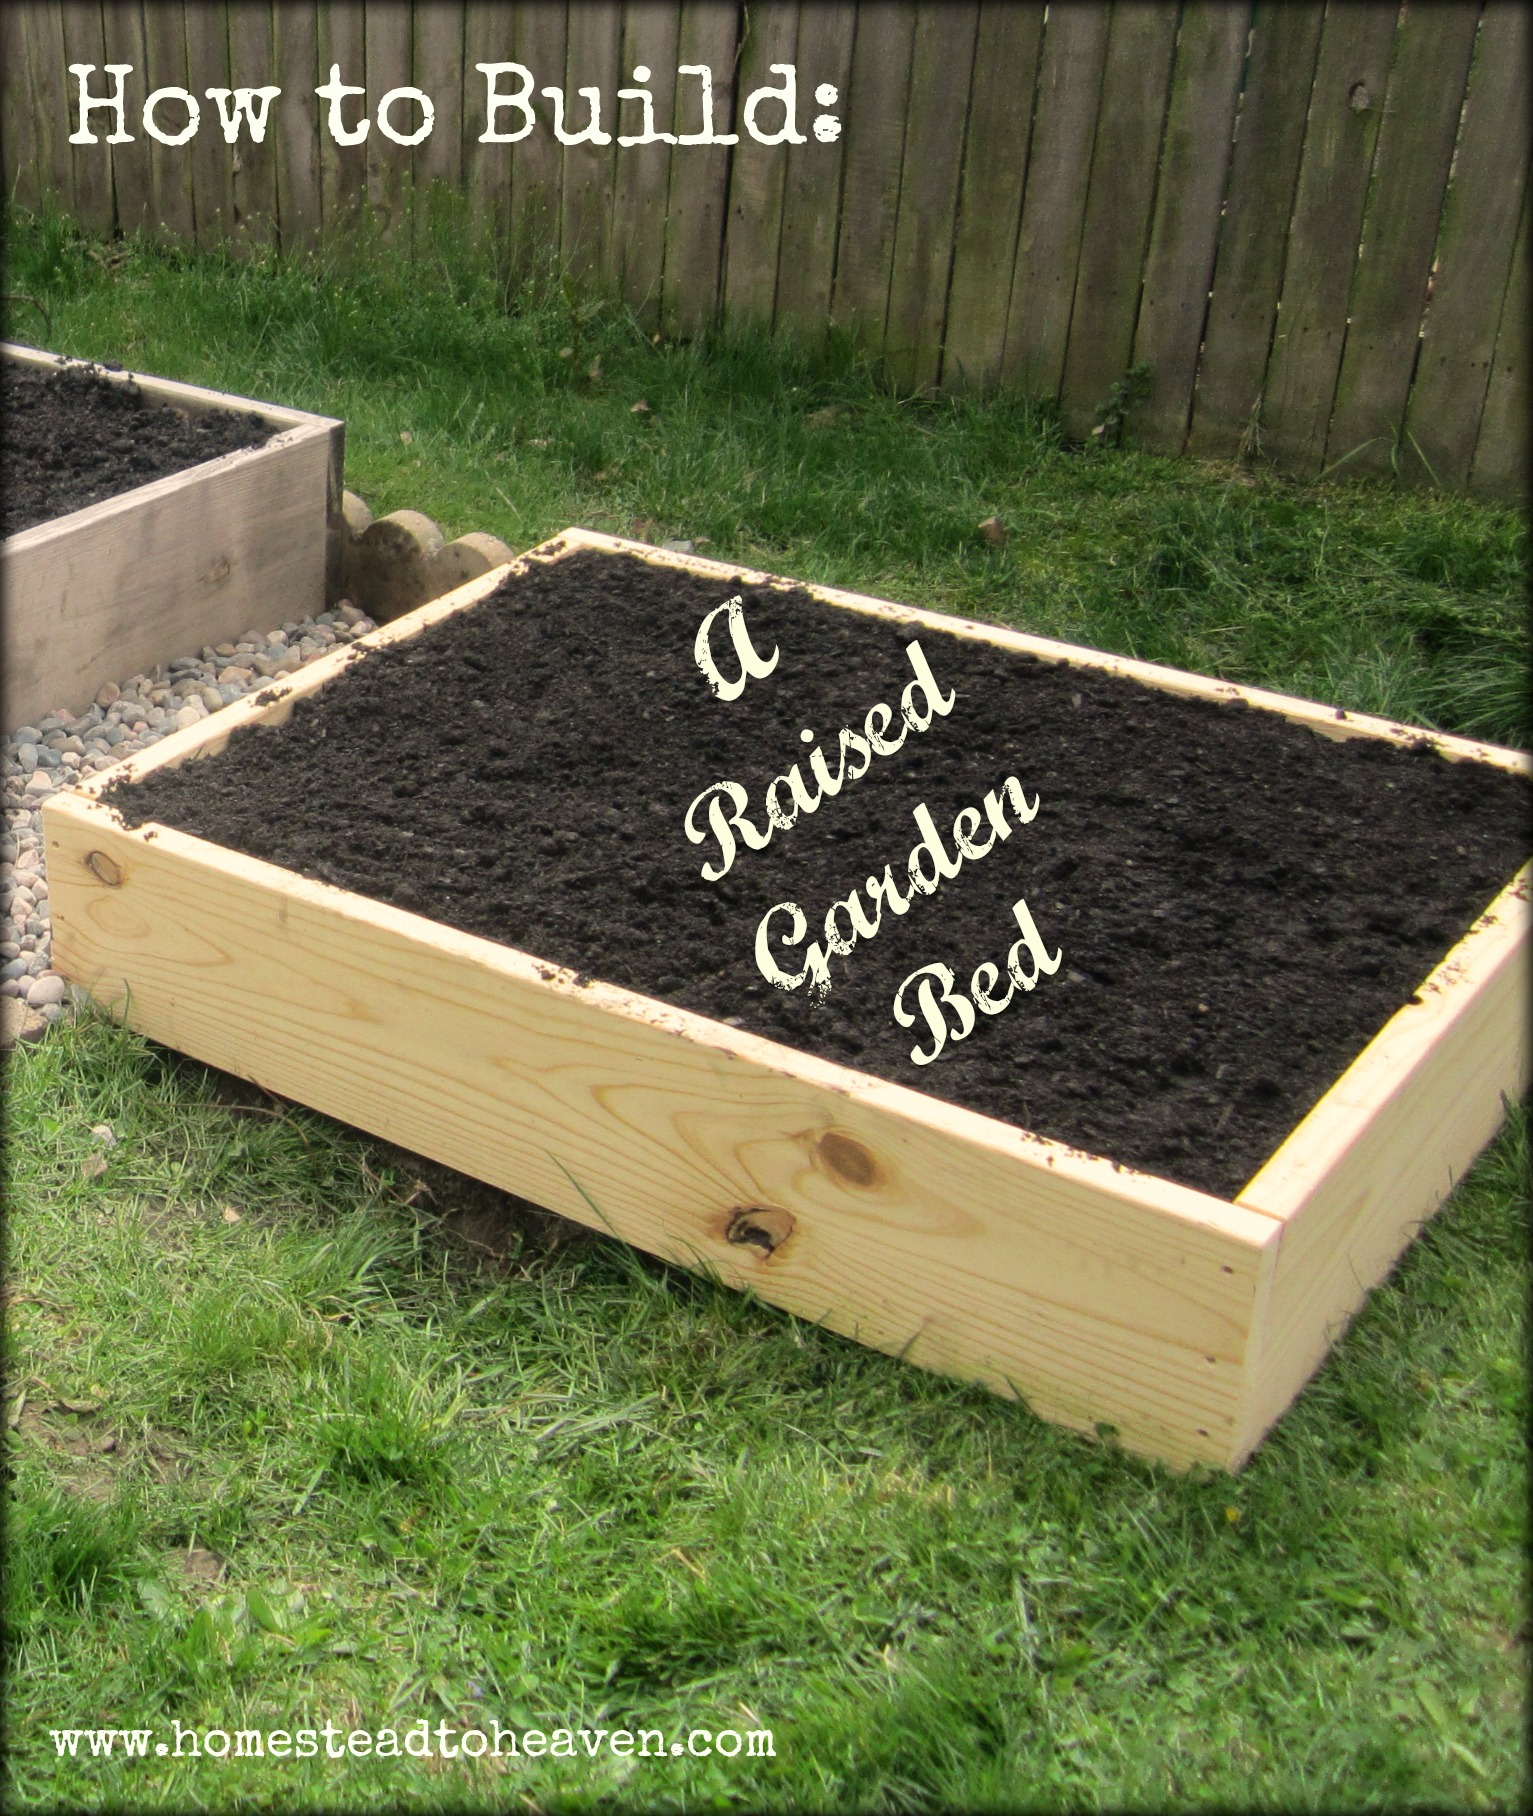 Building A Raised Bed Garden With Ipe How To Build A